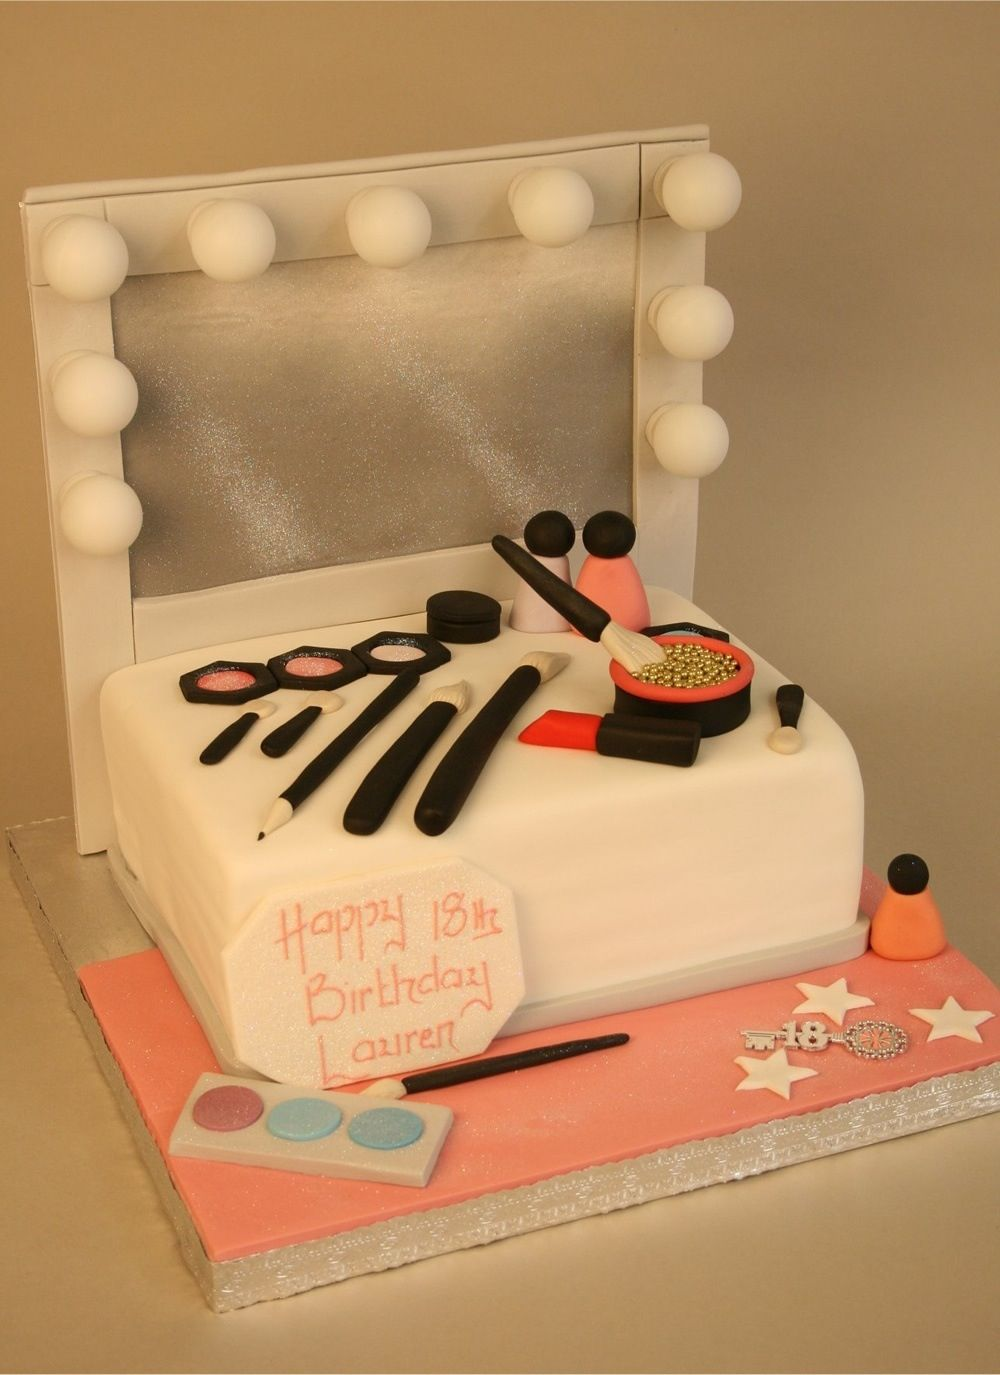 Pin By Francesca Collins On Cakes Mini Cakes Pinterest Cake